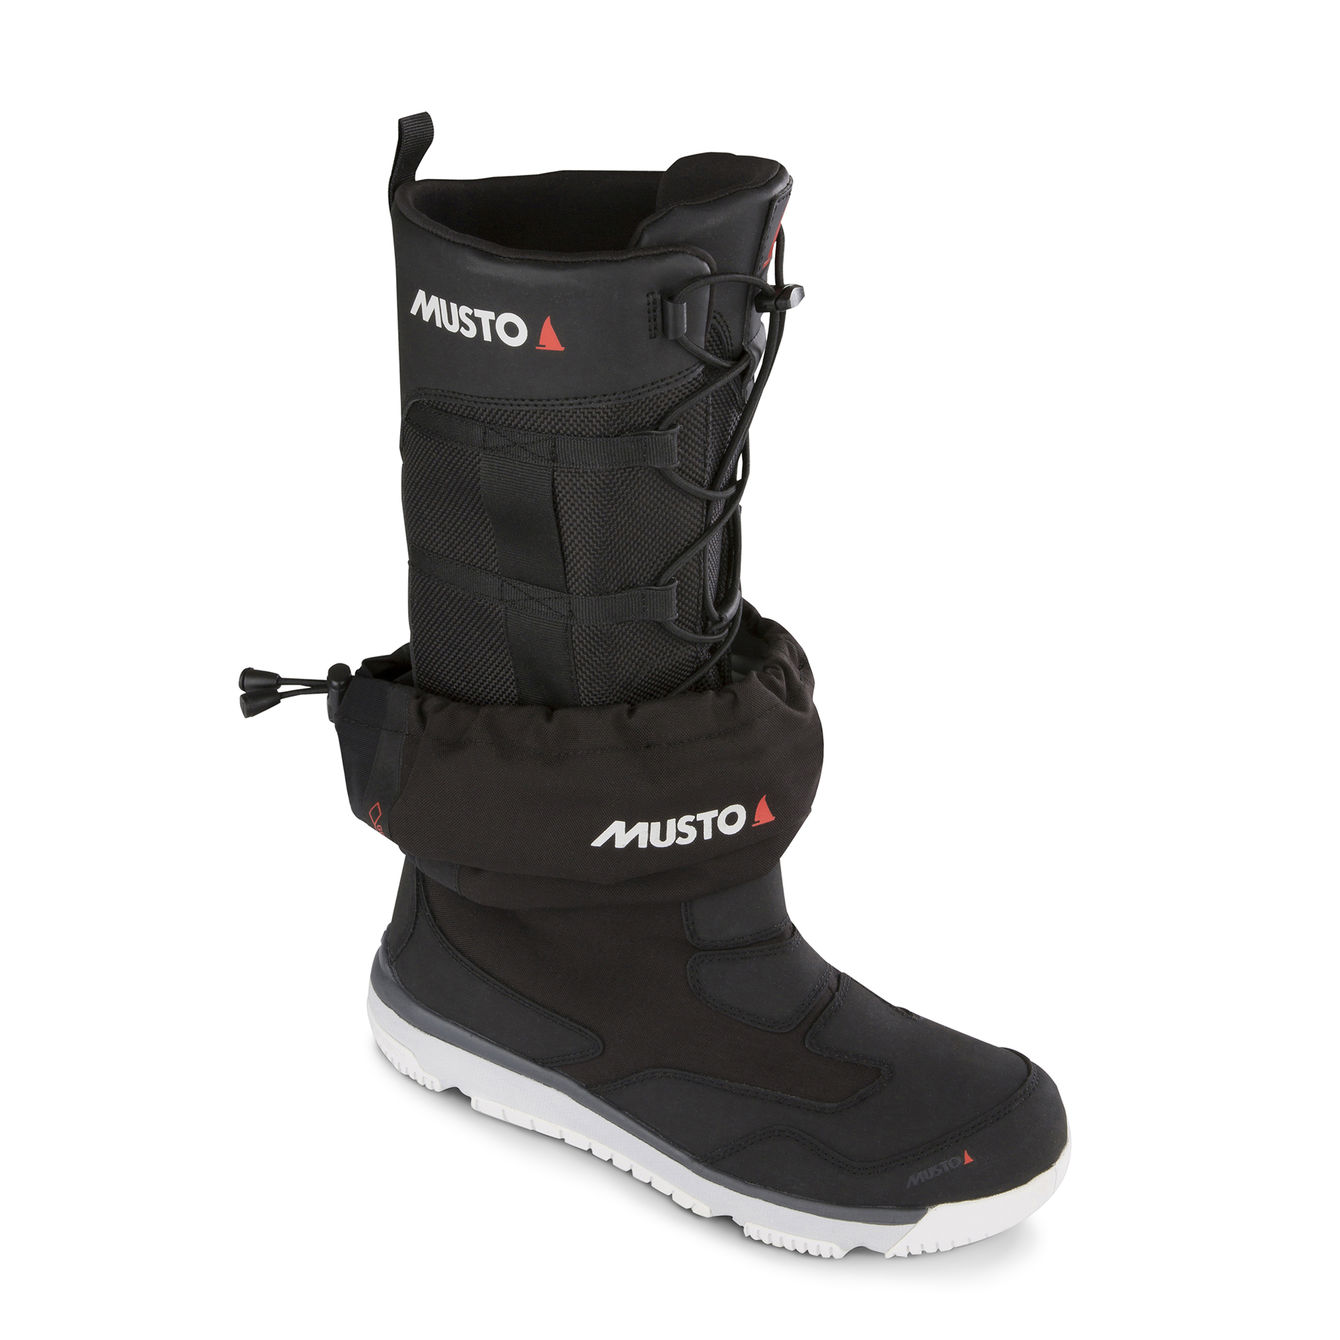 Gore-Tex Ocean Racer Sailing Boots Review